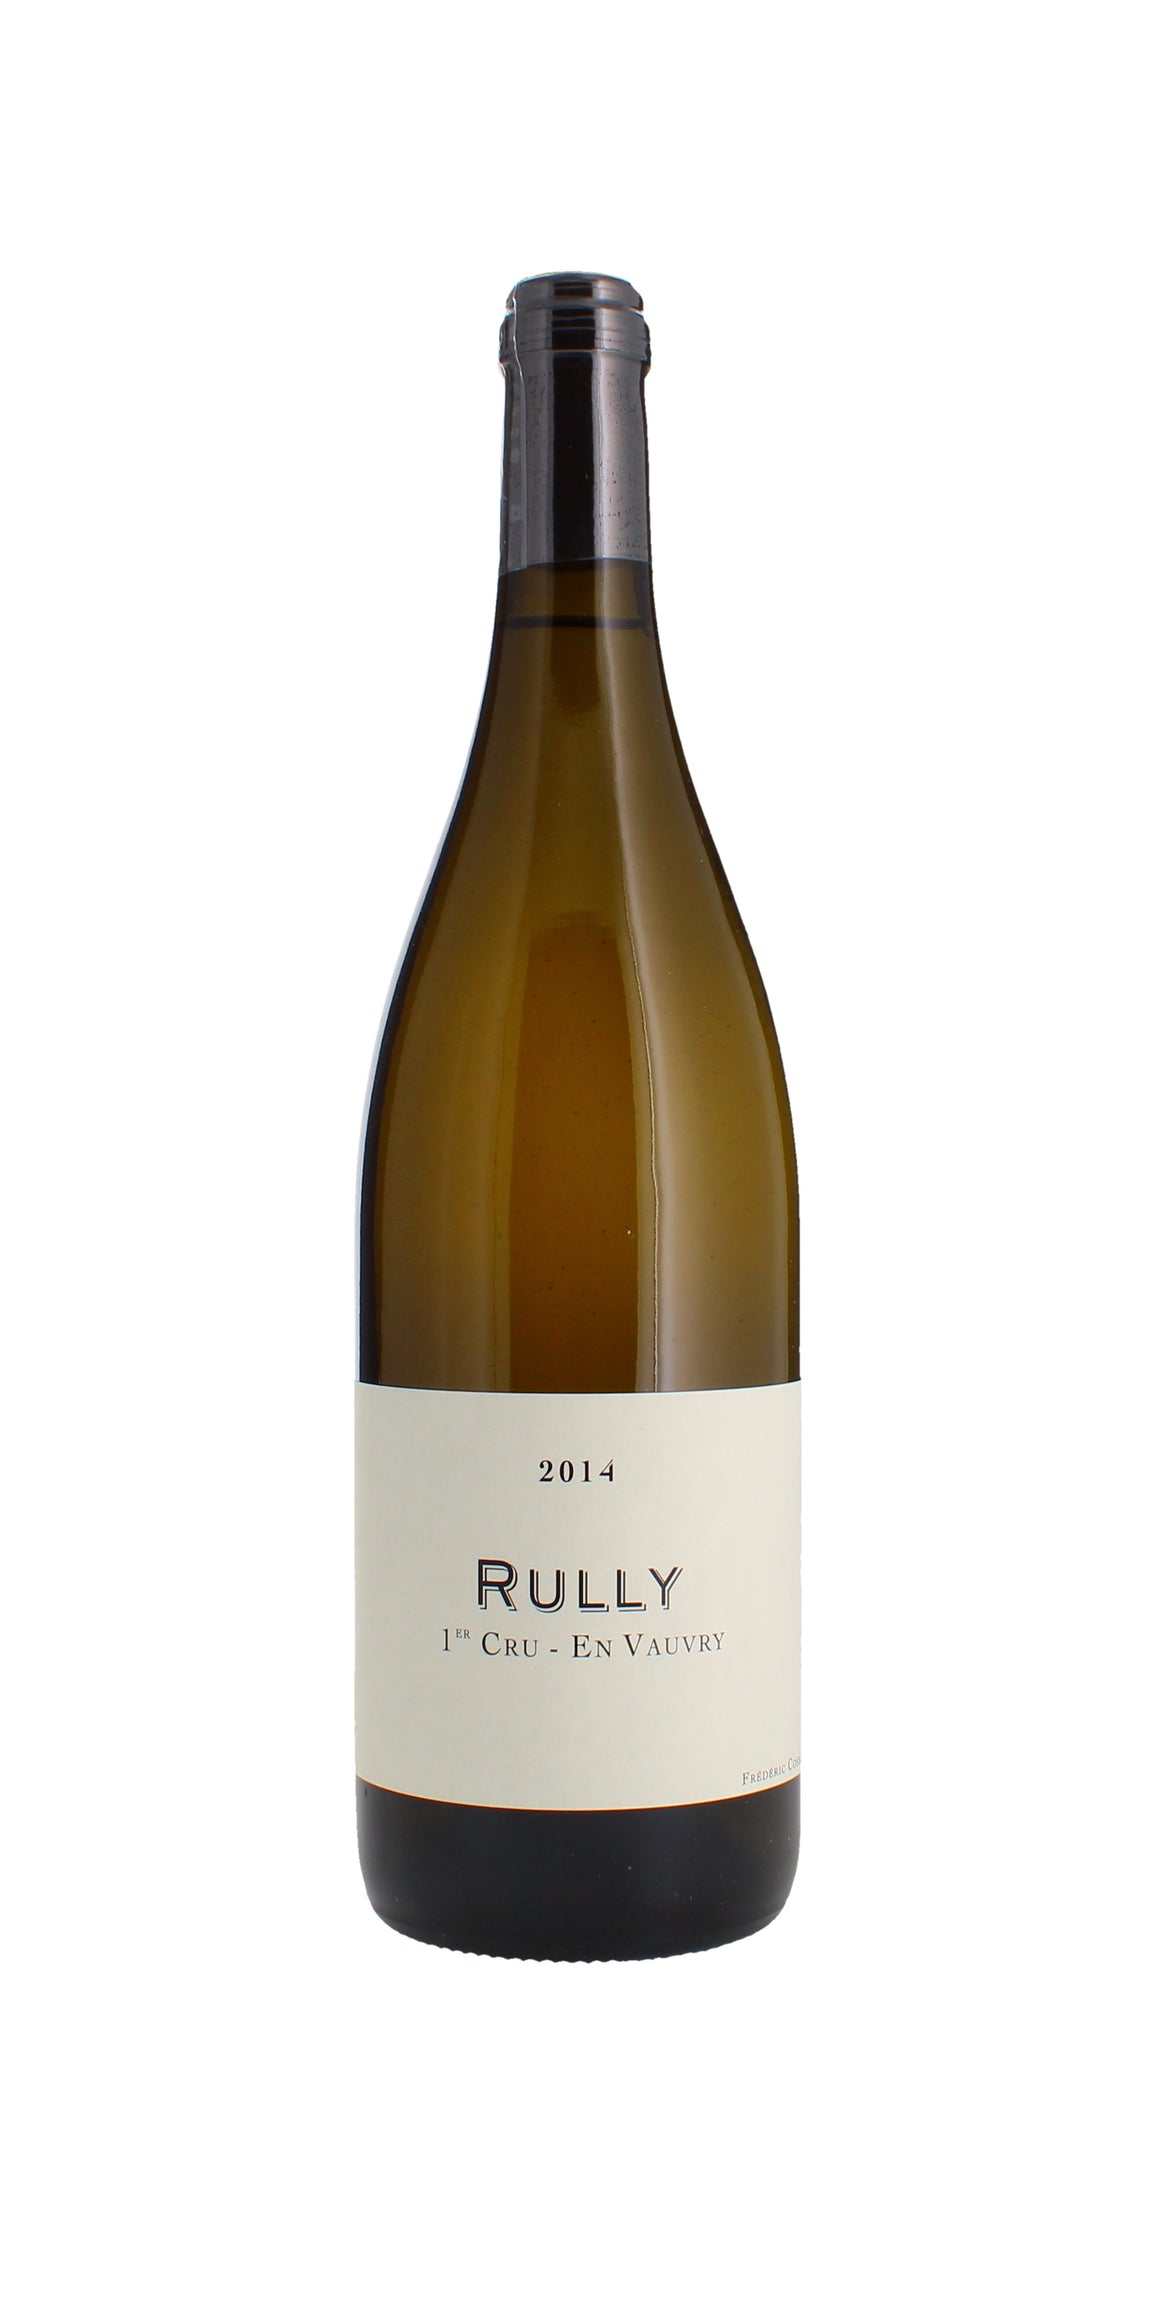 Domaine de Chassorney Frederic Cossard Rully Blanc 1er Cru En Vauvry 2014